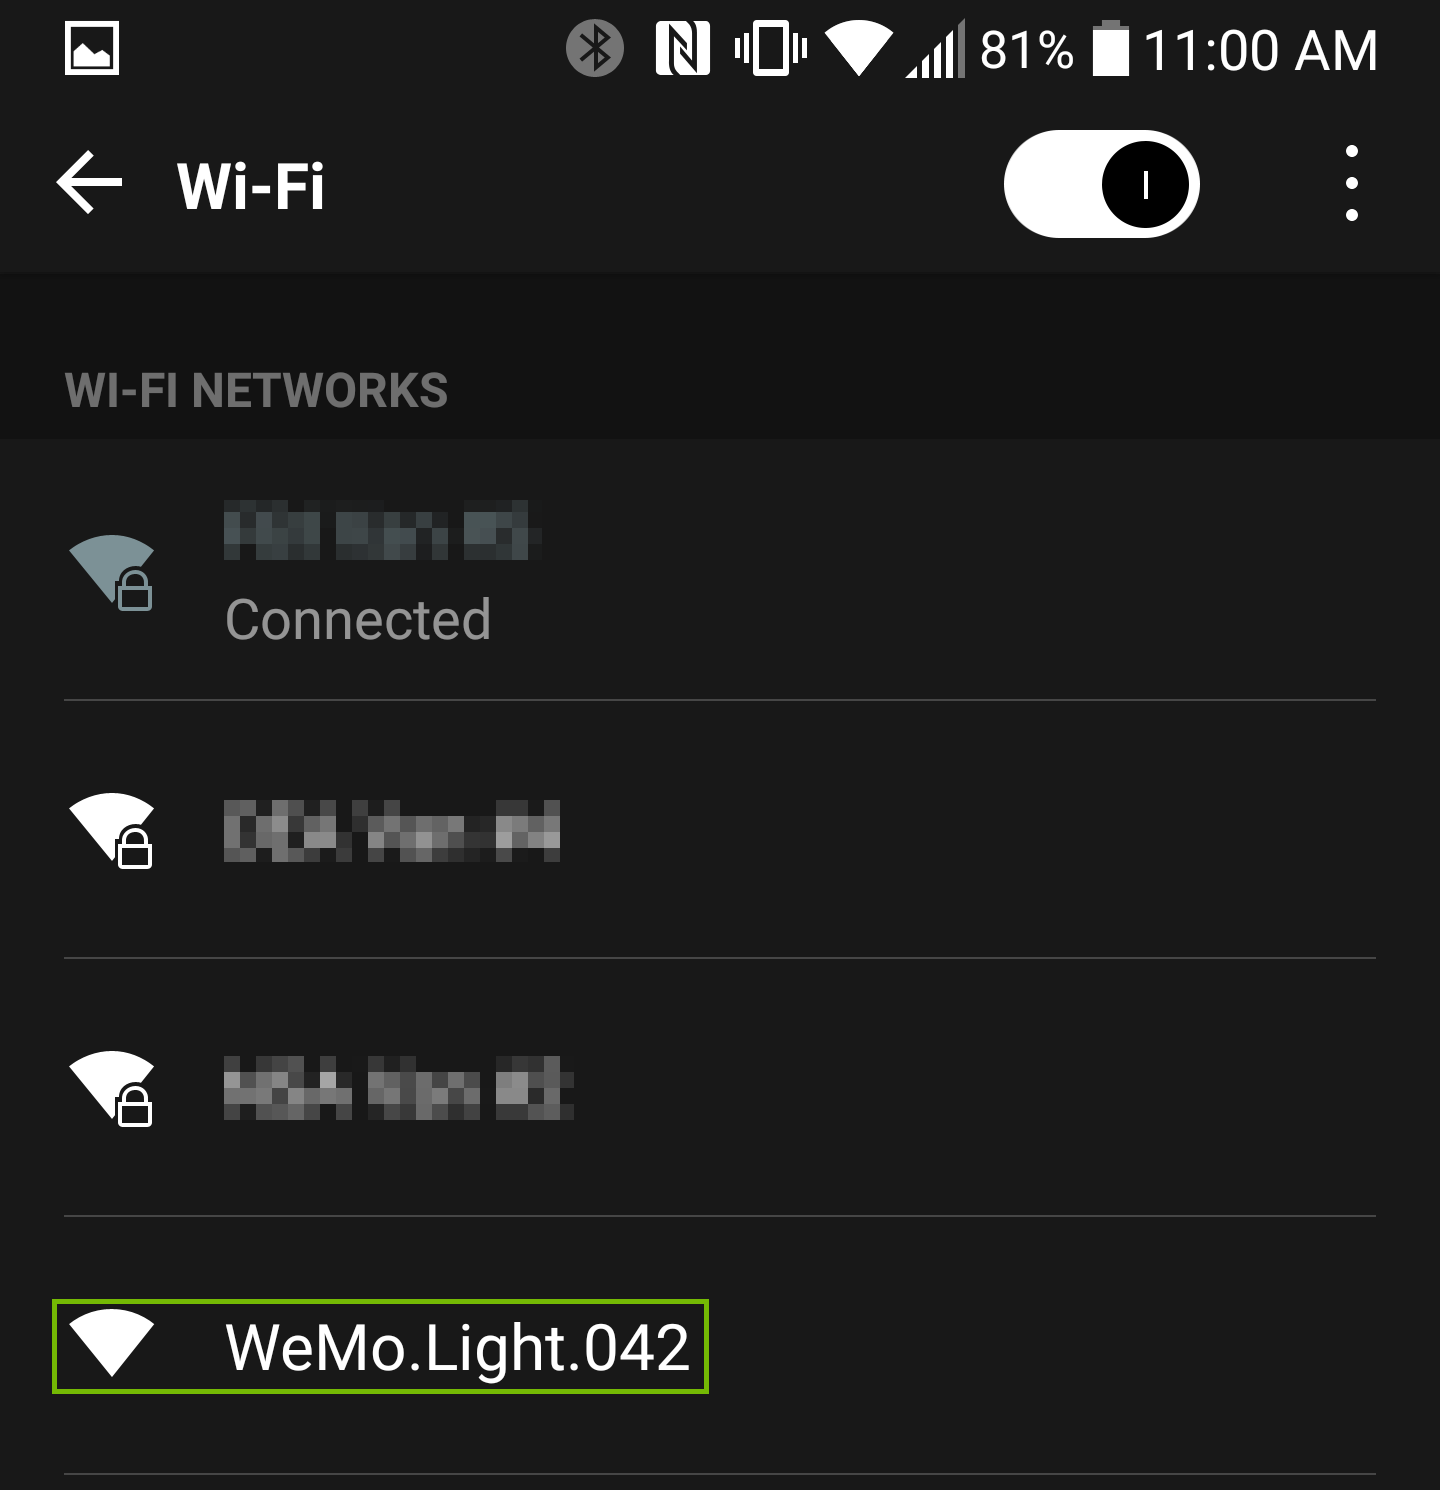 Wi-Fi Network list with WeMo network highlighted.